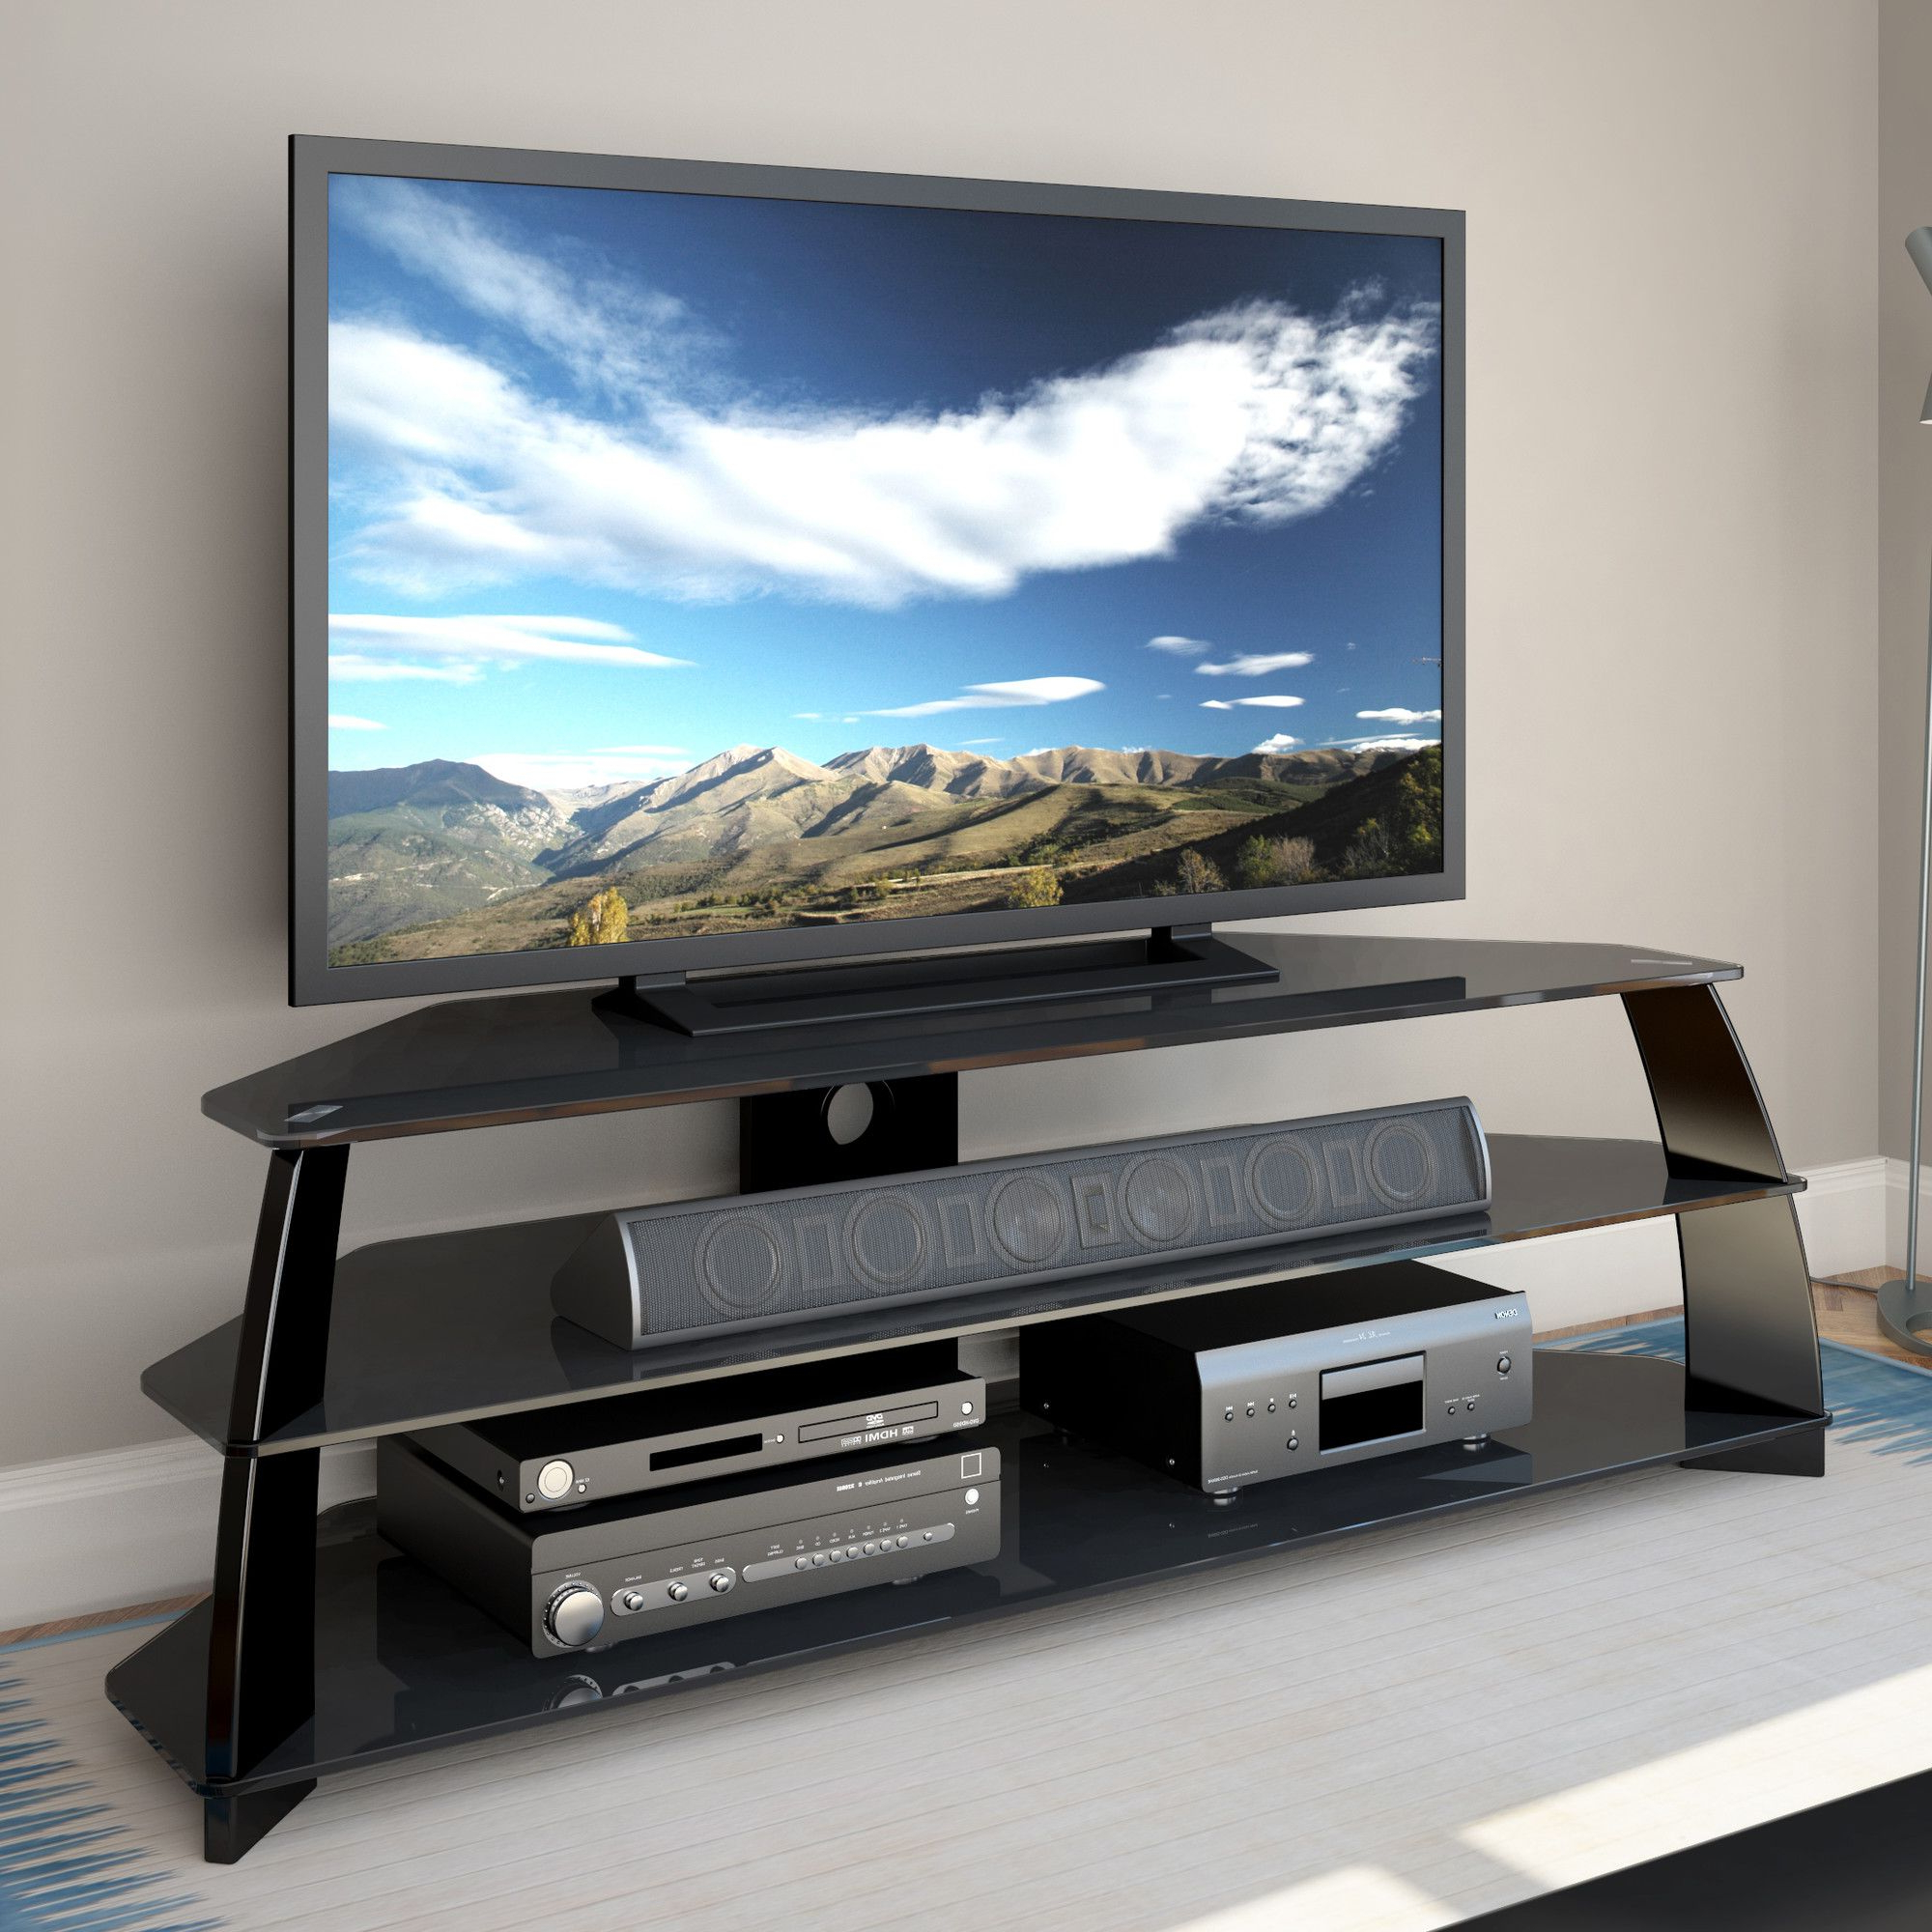 """Online Home Store For Furniture, Decor, Outdoors & More Pertaining To Most Up To Date Karon Tv Stands For Tvs Up To 65"""" (View 3 of 25)"""